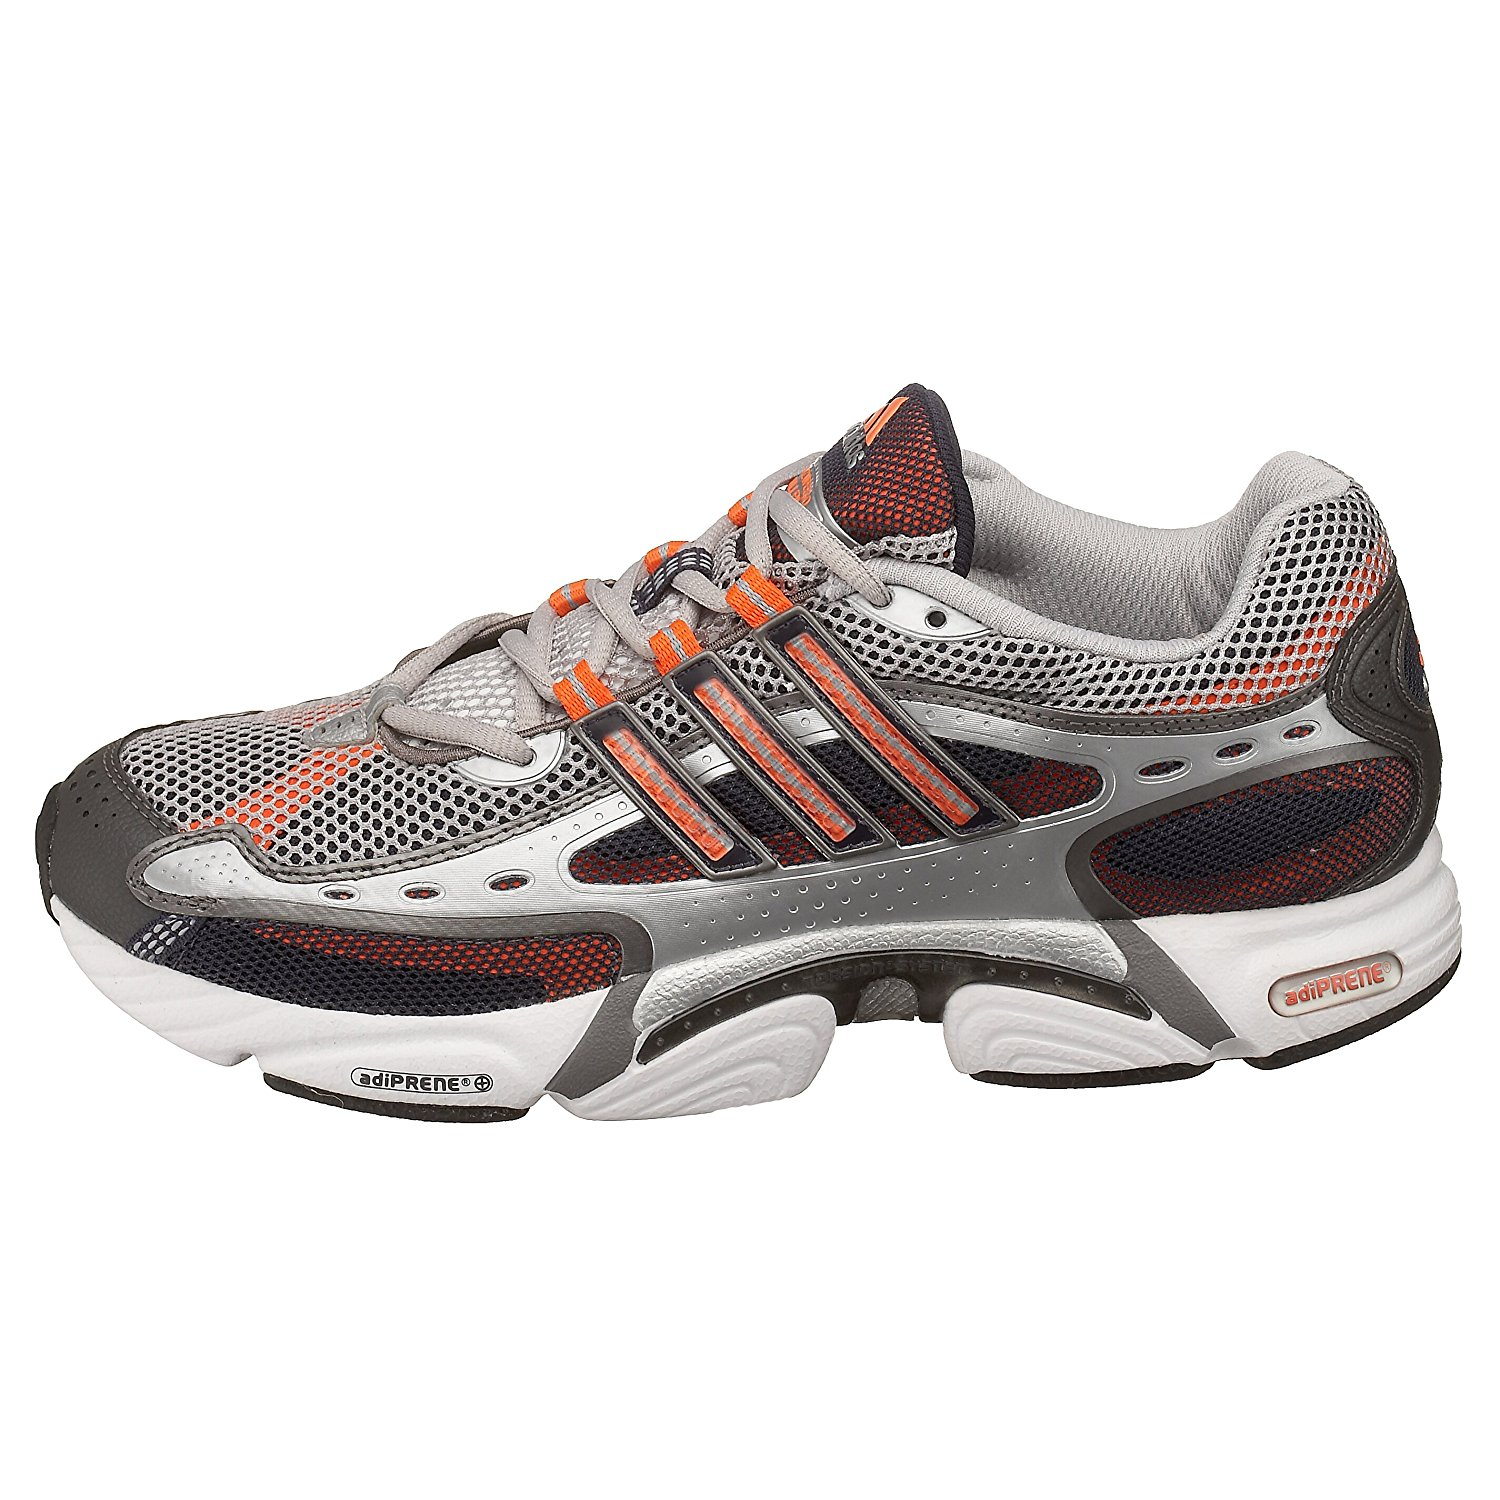 0c083a5eb6ce5 adidas Men's Ozweego Millennium Running Shoe, Silver/Cyber Orange, 14 M:  Buy Online at Low Prices in India - Amazon.in